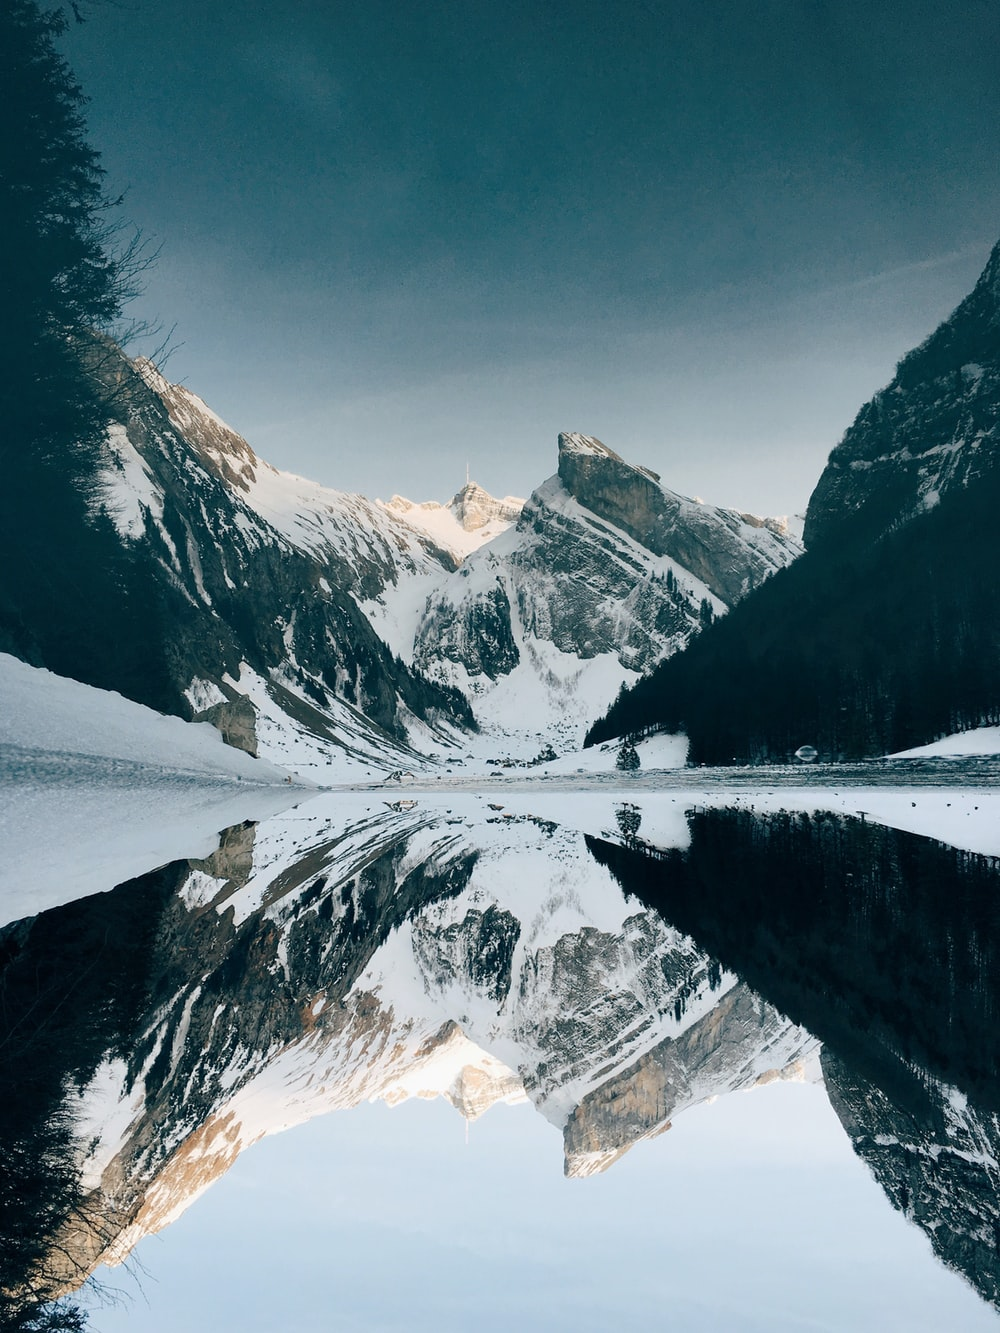 snow-covered mountain near lake under blue sky